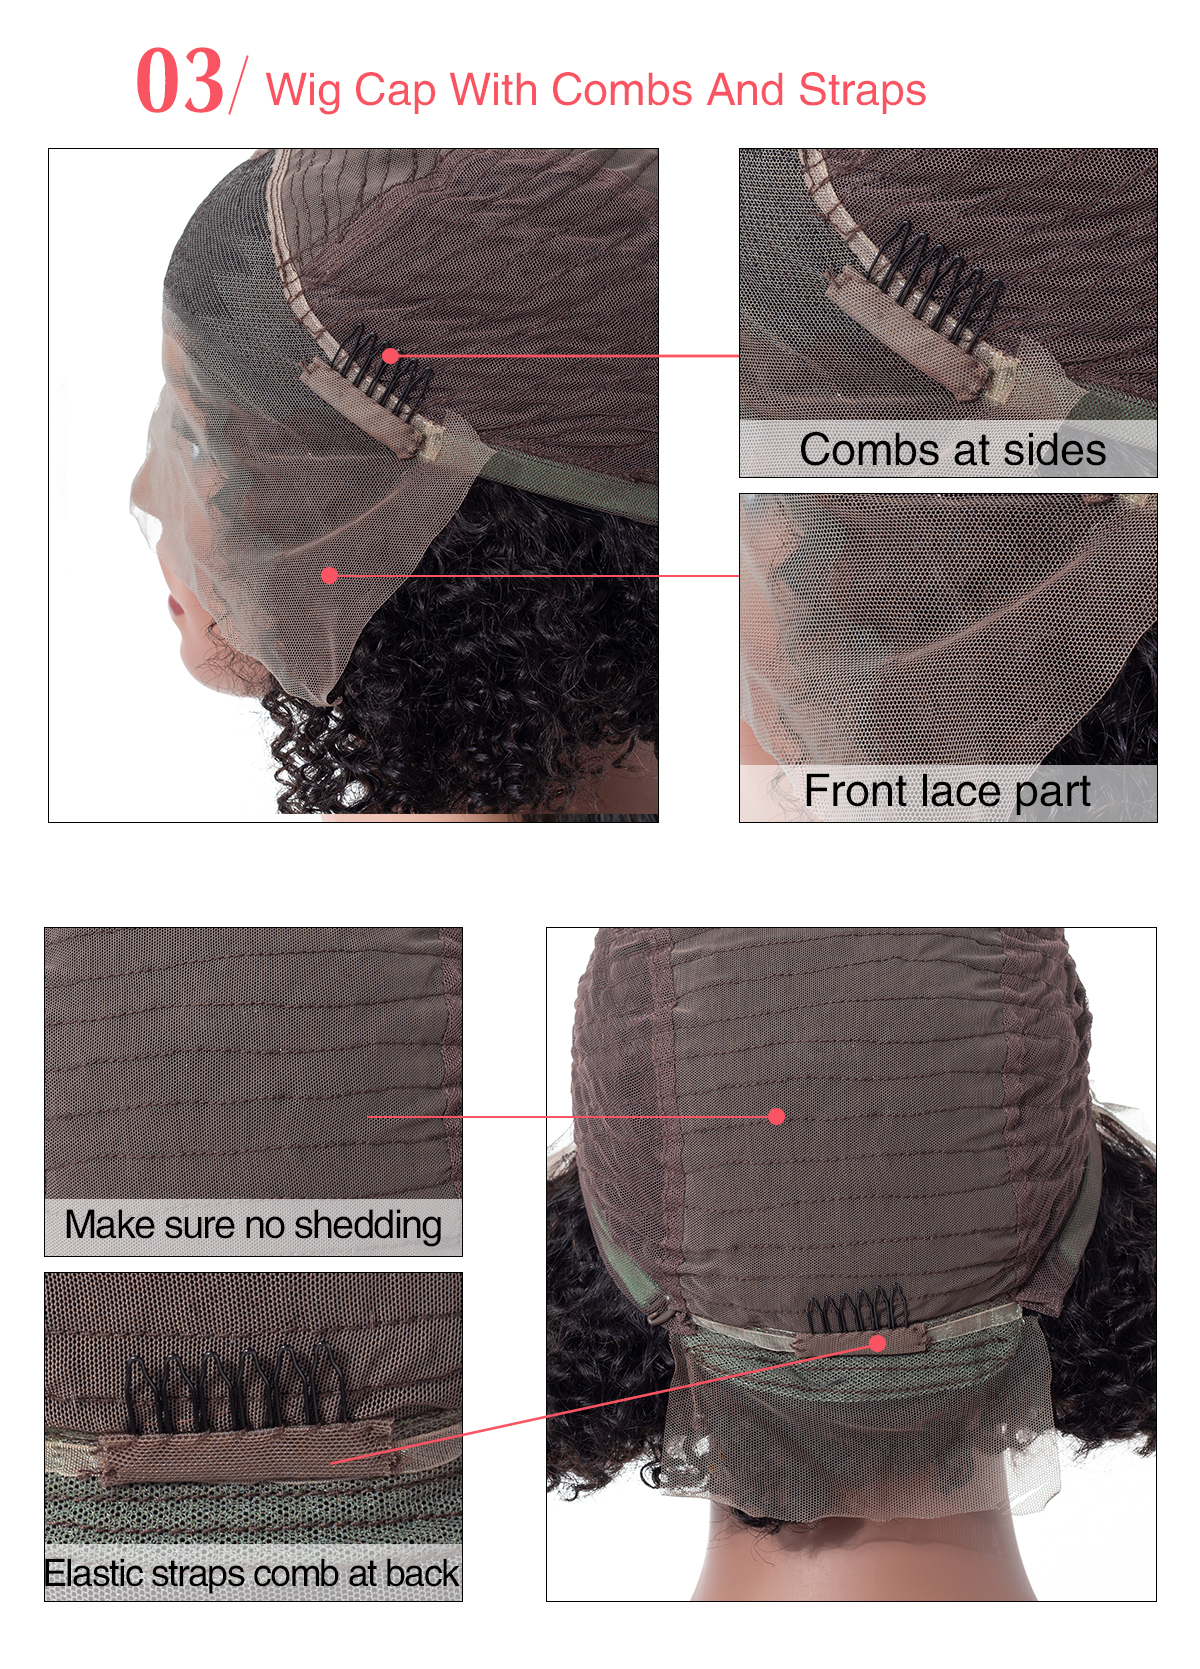 Details about teh inside part of the curly bob wig, the wigs caps, wig combs, front lace part and sew in part